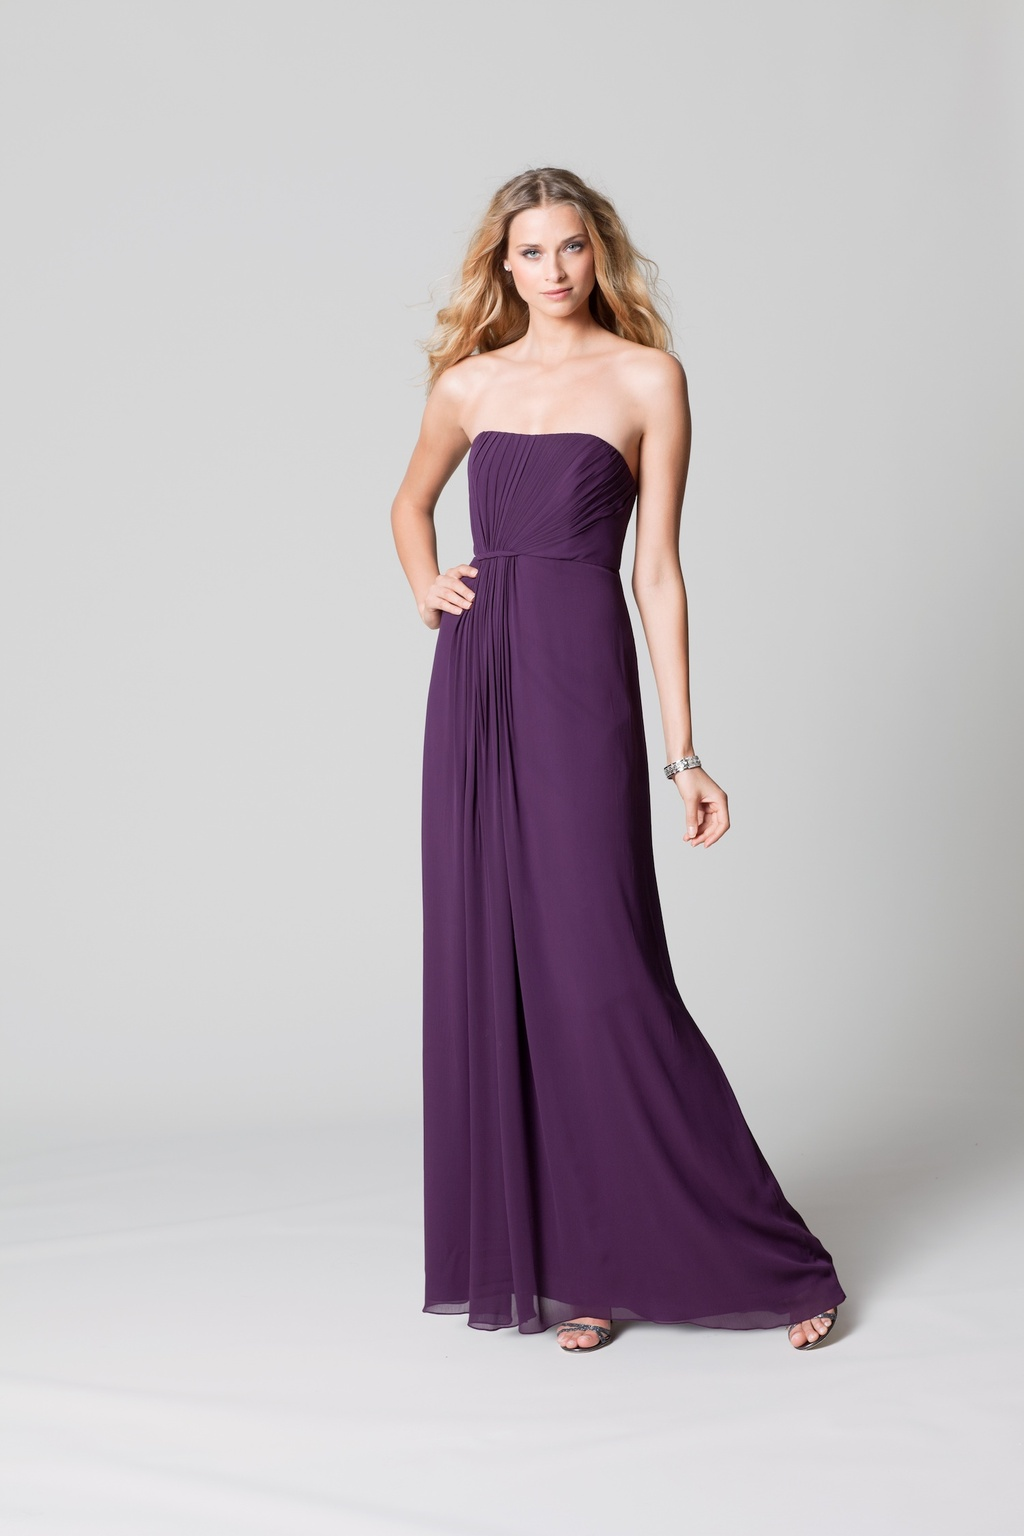 Affordable-bridesmaids-dresses-fall-2012-wtoo-by-watters-bridal-party-eggplant-purple-full-length.full